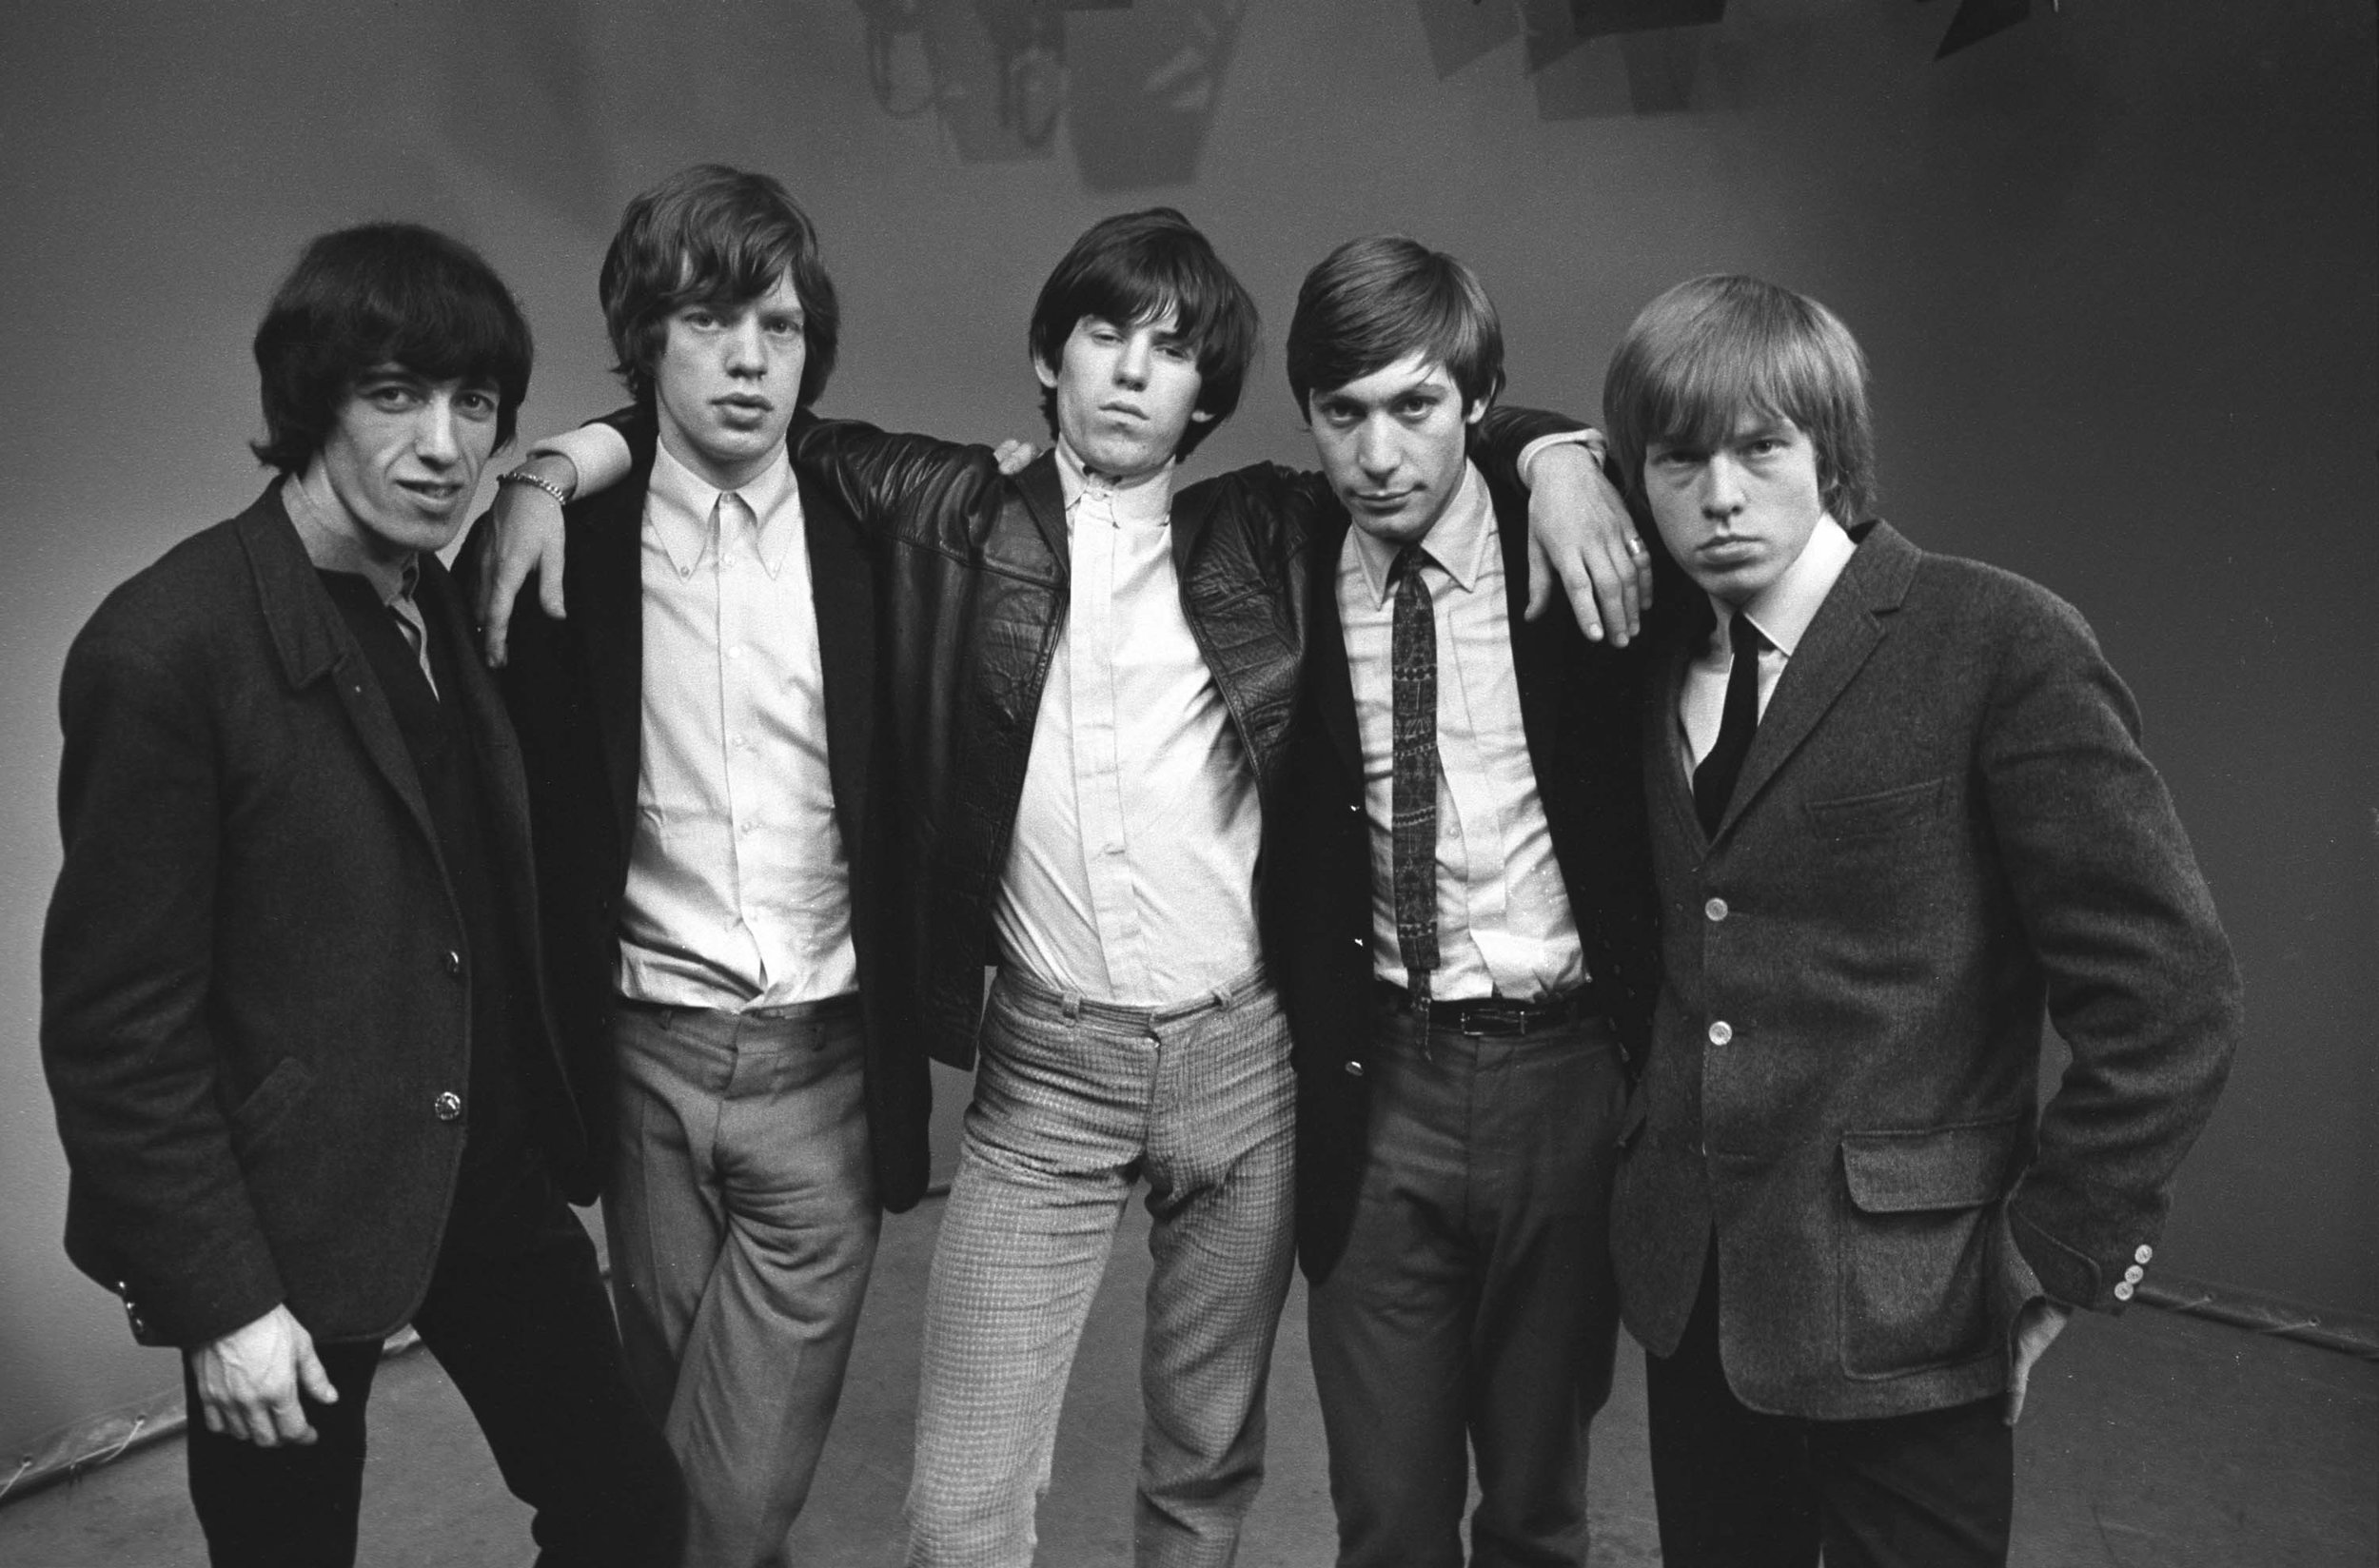 The Rolling Stones Studio Group Shot #1, London, 1964